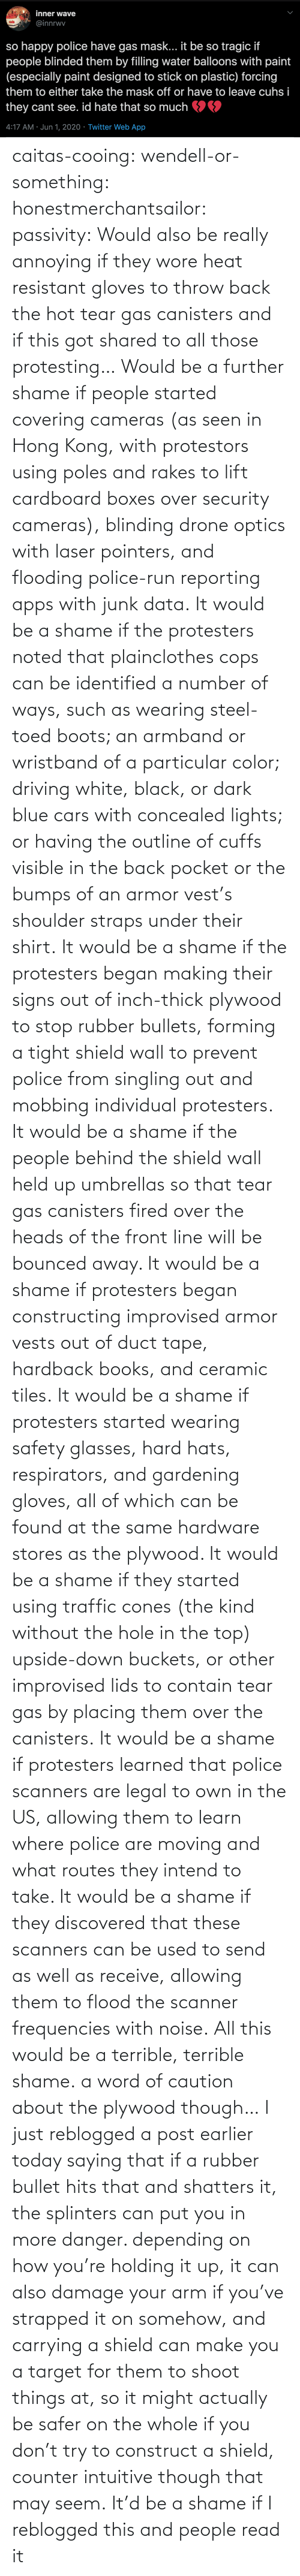 Annoying: caitas-cooing:  wendell-or-something: honestmerchantsailor:  passivity: Would also be really annoying if they wore heat resistant gloves to throw back the hot tear gas canisters and if this got shared to all those protesting… Would be a further shame if people started covering cameras (as seen in Hong Kong, with protestors using poles and rakes to lift cardboard boxes over security cameras), blinding drone optics with laser pointers, and flooding police-run reporting apps with junk data. It would be a shame if the protesters noted that plainclothes cops can be identified a number of ways, such as wearing steel-toed boots; an armband or wristband of a particular color; driving white, black, or dark blue cars with concealed lights; or having the outline of cuffs visible in the back pocket or the bumps of an armor vest's shoulder straps under their shirt. It would be a shame if the protesters began making their signs out of inch-thick plywood to stop rubber bullets, forming a tight shield wall to prevent police from singling out and mobbing individual protesters. It would be a shame if the people behind the shield wall held up umbrellas so that tear gas canisters fired over the heads of the front line will be bounced away. It would be a shame if protesters began constructing improvised armor vests out of duct tape, hardback books, and ceramic tiles. It would be a shame if protesters started wearing safety glasses, hard hats, respirators, and gardening gloves, all of which can be found at the same hardware stores as the plywood. It would be a shame if they started using traffic cones (the kind without the hole in the top) upside-down buckets, or other improvised lids to contain tear gas by placing them over the canisters. It would be a shame if protesters learned that police scanners are legal to own in the US, allowing them to learn where police are moving and what routes they intend to take. It would be a shame if they discovered that these scanners can be used to send as well as receive, allowing them to flood the scanner frequencies with noise. All this would be a terrible, terrible shame.    a word of caution about the plywood though… I just reblogged a post earlier today saying that if a rubber bullet hits that and shatters it, the splinters can put you in more danger. depending on how you're holding it up, it can also damage your arm if you've strapped it on somehow, and carrying a shield can make you a target for them to shoot things at, so it might actually be safer on the whole if you don't try to construct a shield, counter intuitive though that may seem.    It'd be a shame if I reblogged this and people read it